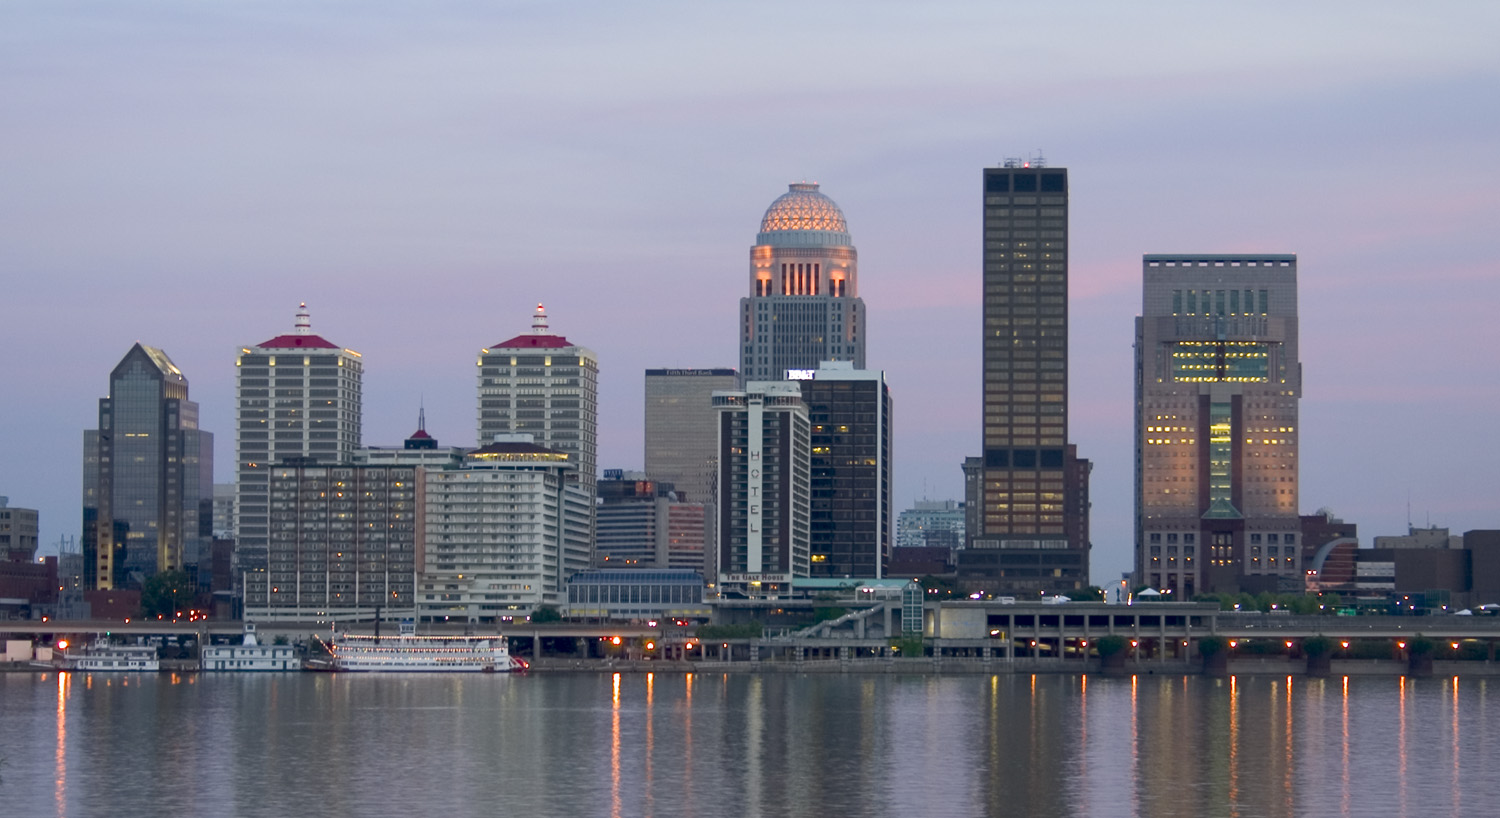 http://upload.wikimedia.org/wikipedia/commons/1/16/Louisville_Skyline.jpg